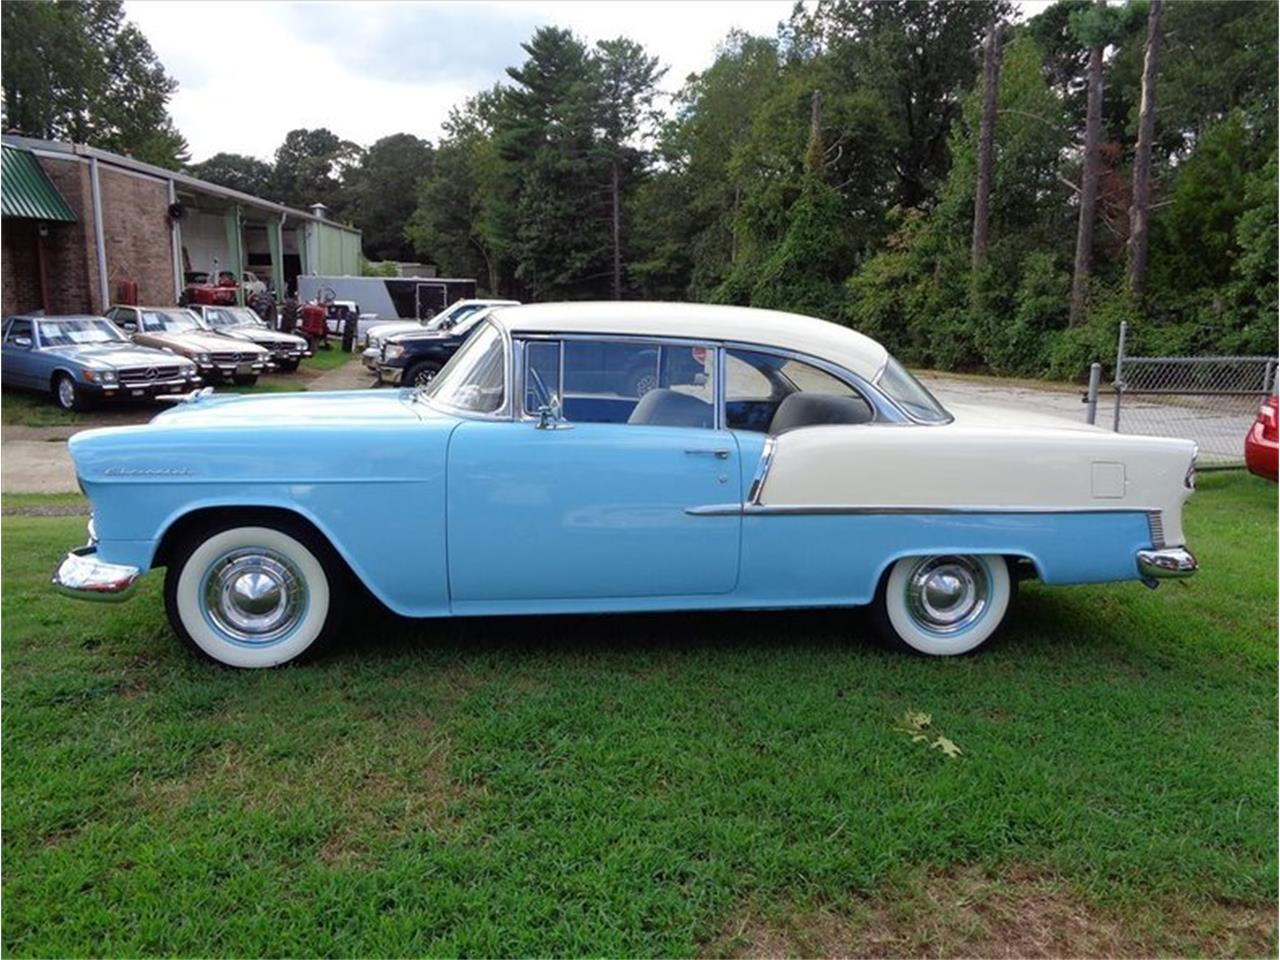 Large Picture of 1955 Chevrolet 210 located in Greensboro North Carolina Auction Vehicle Offered by GAA Classic Cars Auctions - PATO